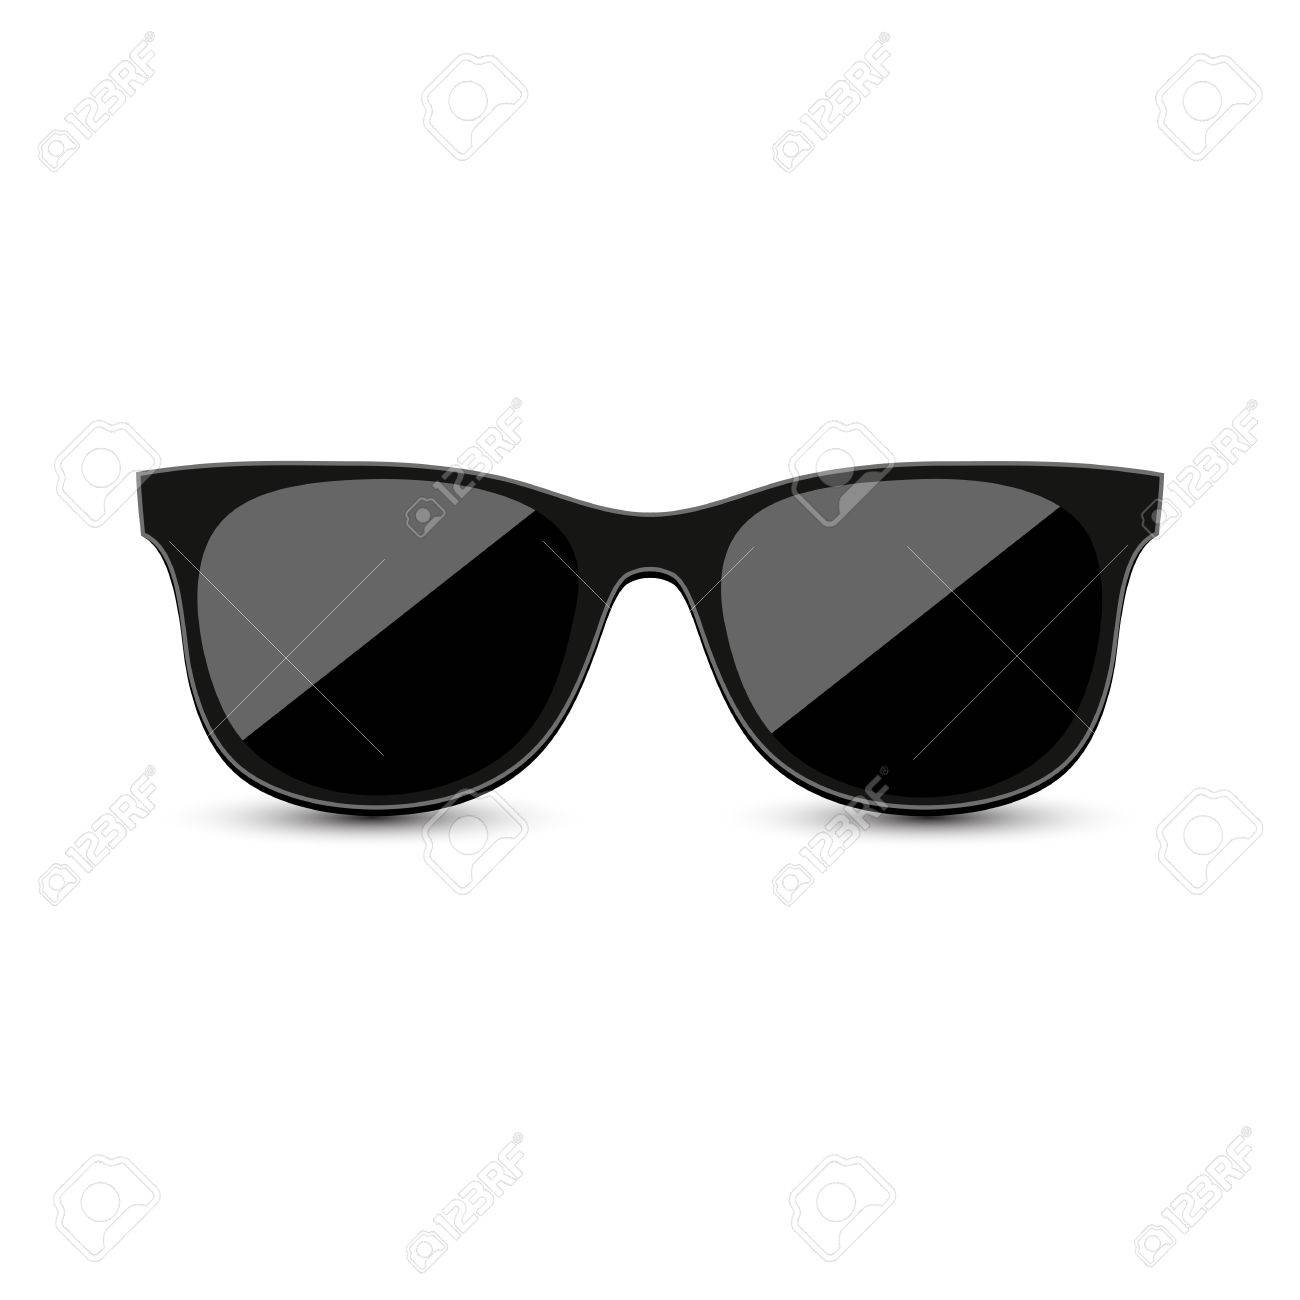 4d819ad9485 Black hipster sunglasses with dark glass on a white background Stock Vector  - 83005539